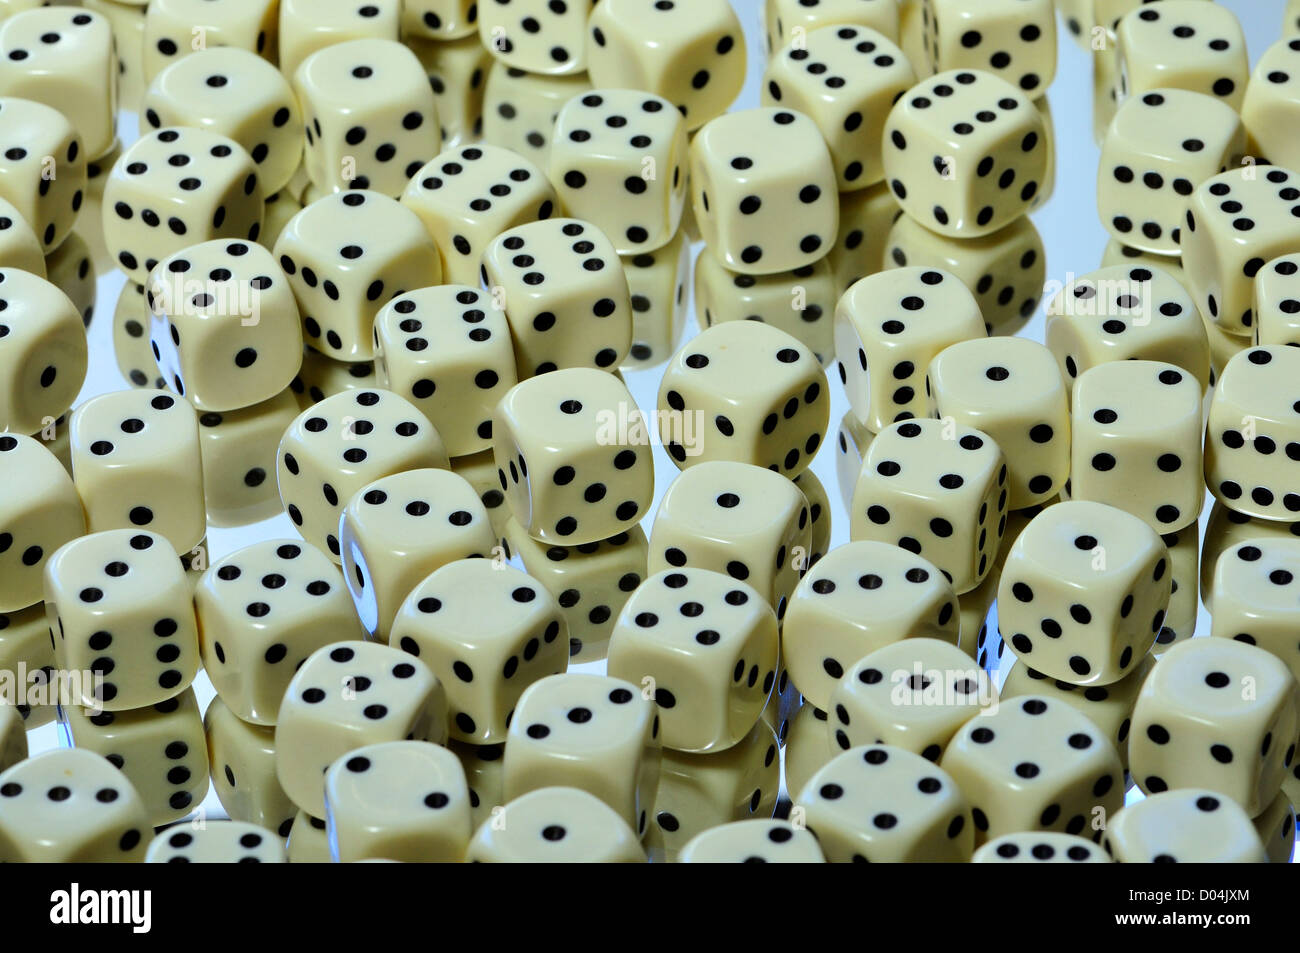 Dice - random numbers - Stock Image